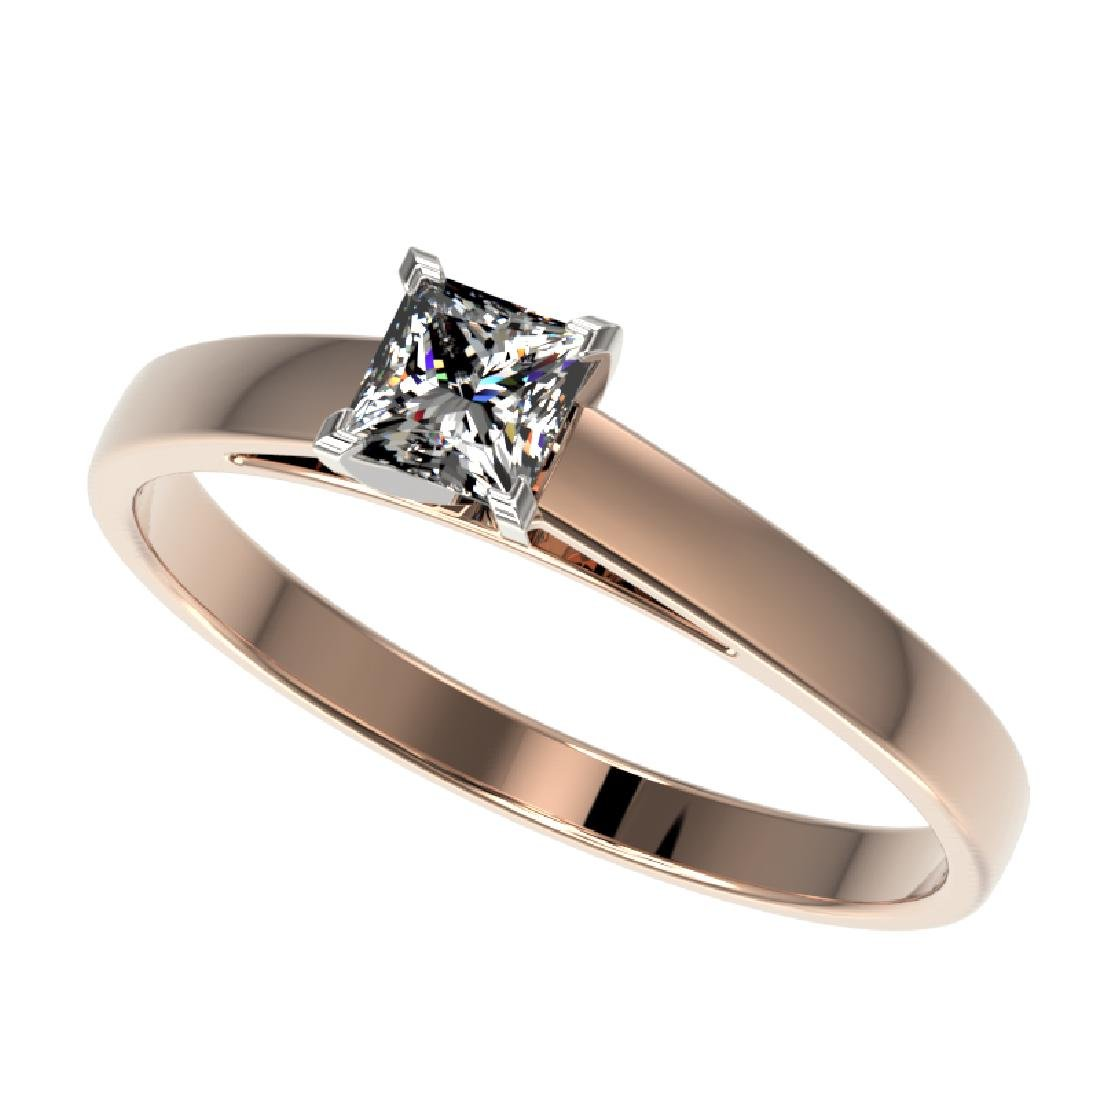 0.50 CTW VS/SI Quality Princess Diamond Solitaire Ring